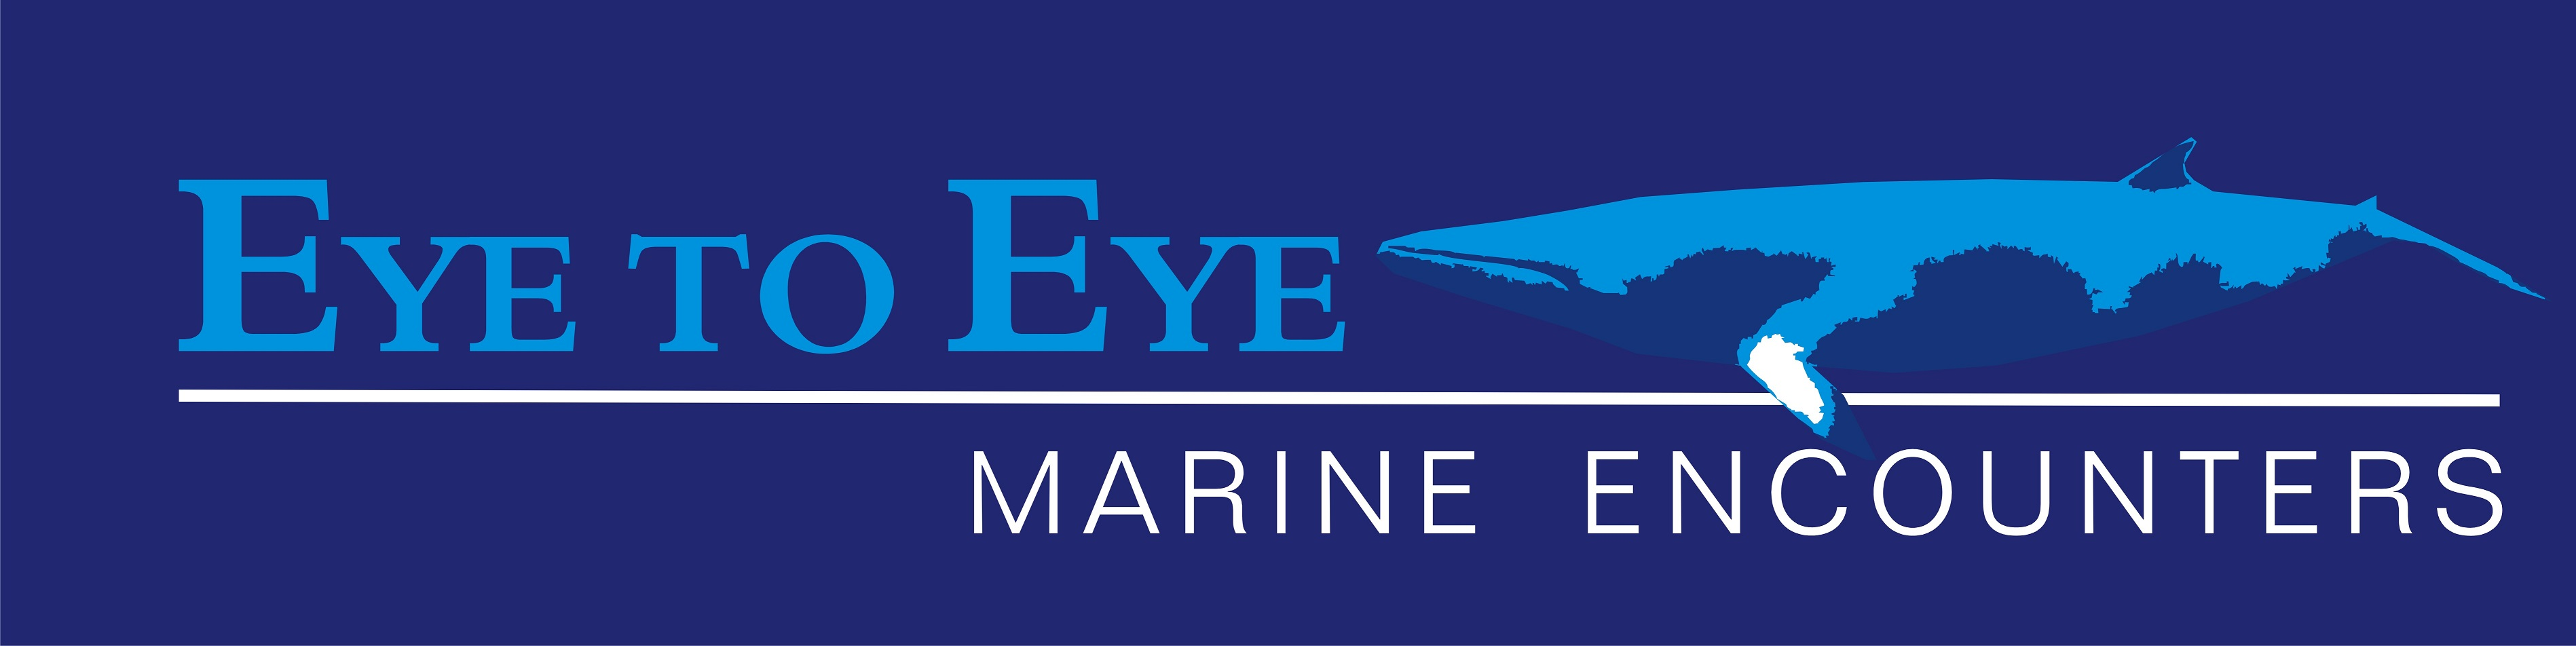 Eye to Eye Marine Encounters